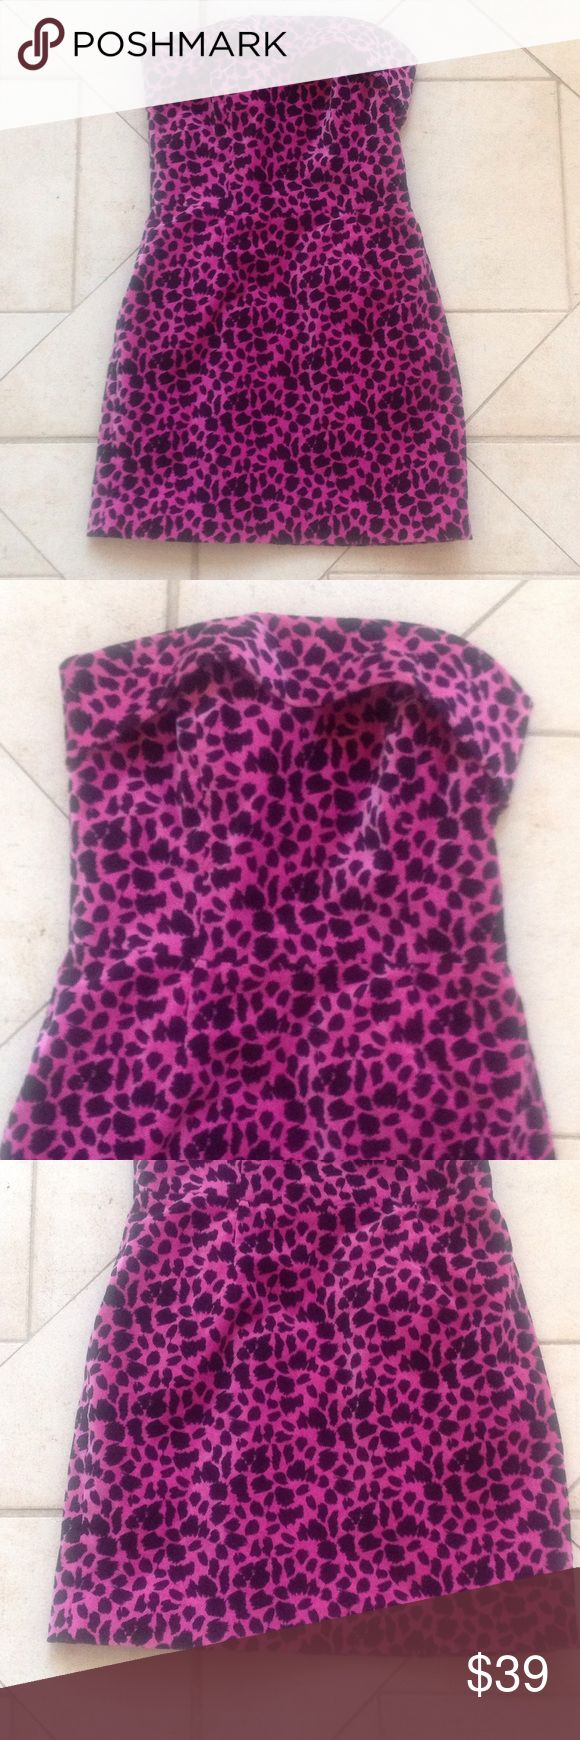 BETSEY JOHNSON Animal Print Strapless Dress Sz 4 GREAT BUY! Describes this Pink/Black Animal Print Strapless BETSEY JOHNSON Dress that measures 16 inches from armpit to armpit; is 14 inches across the waist; is 17 1/2 inches across the hips; and is 26 inches in overall length. Betsey Johnson Dresses Mini